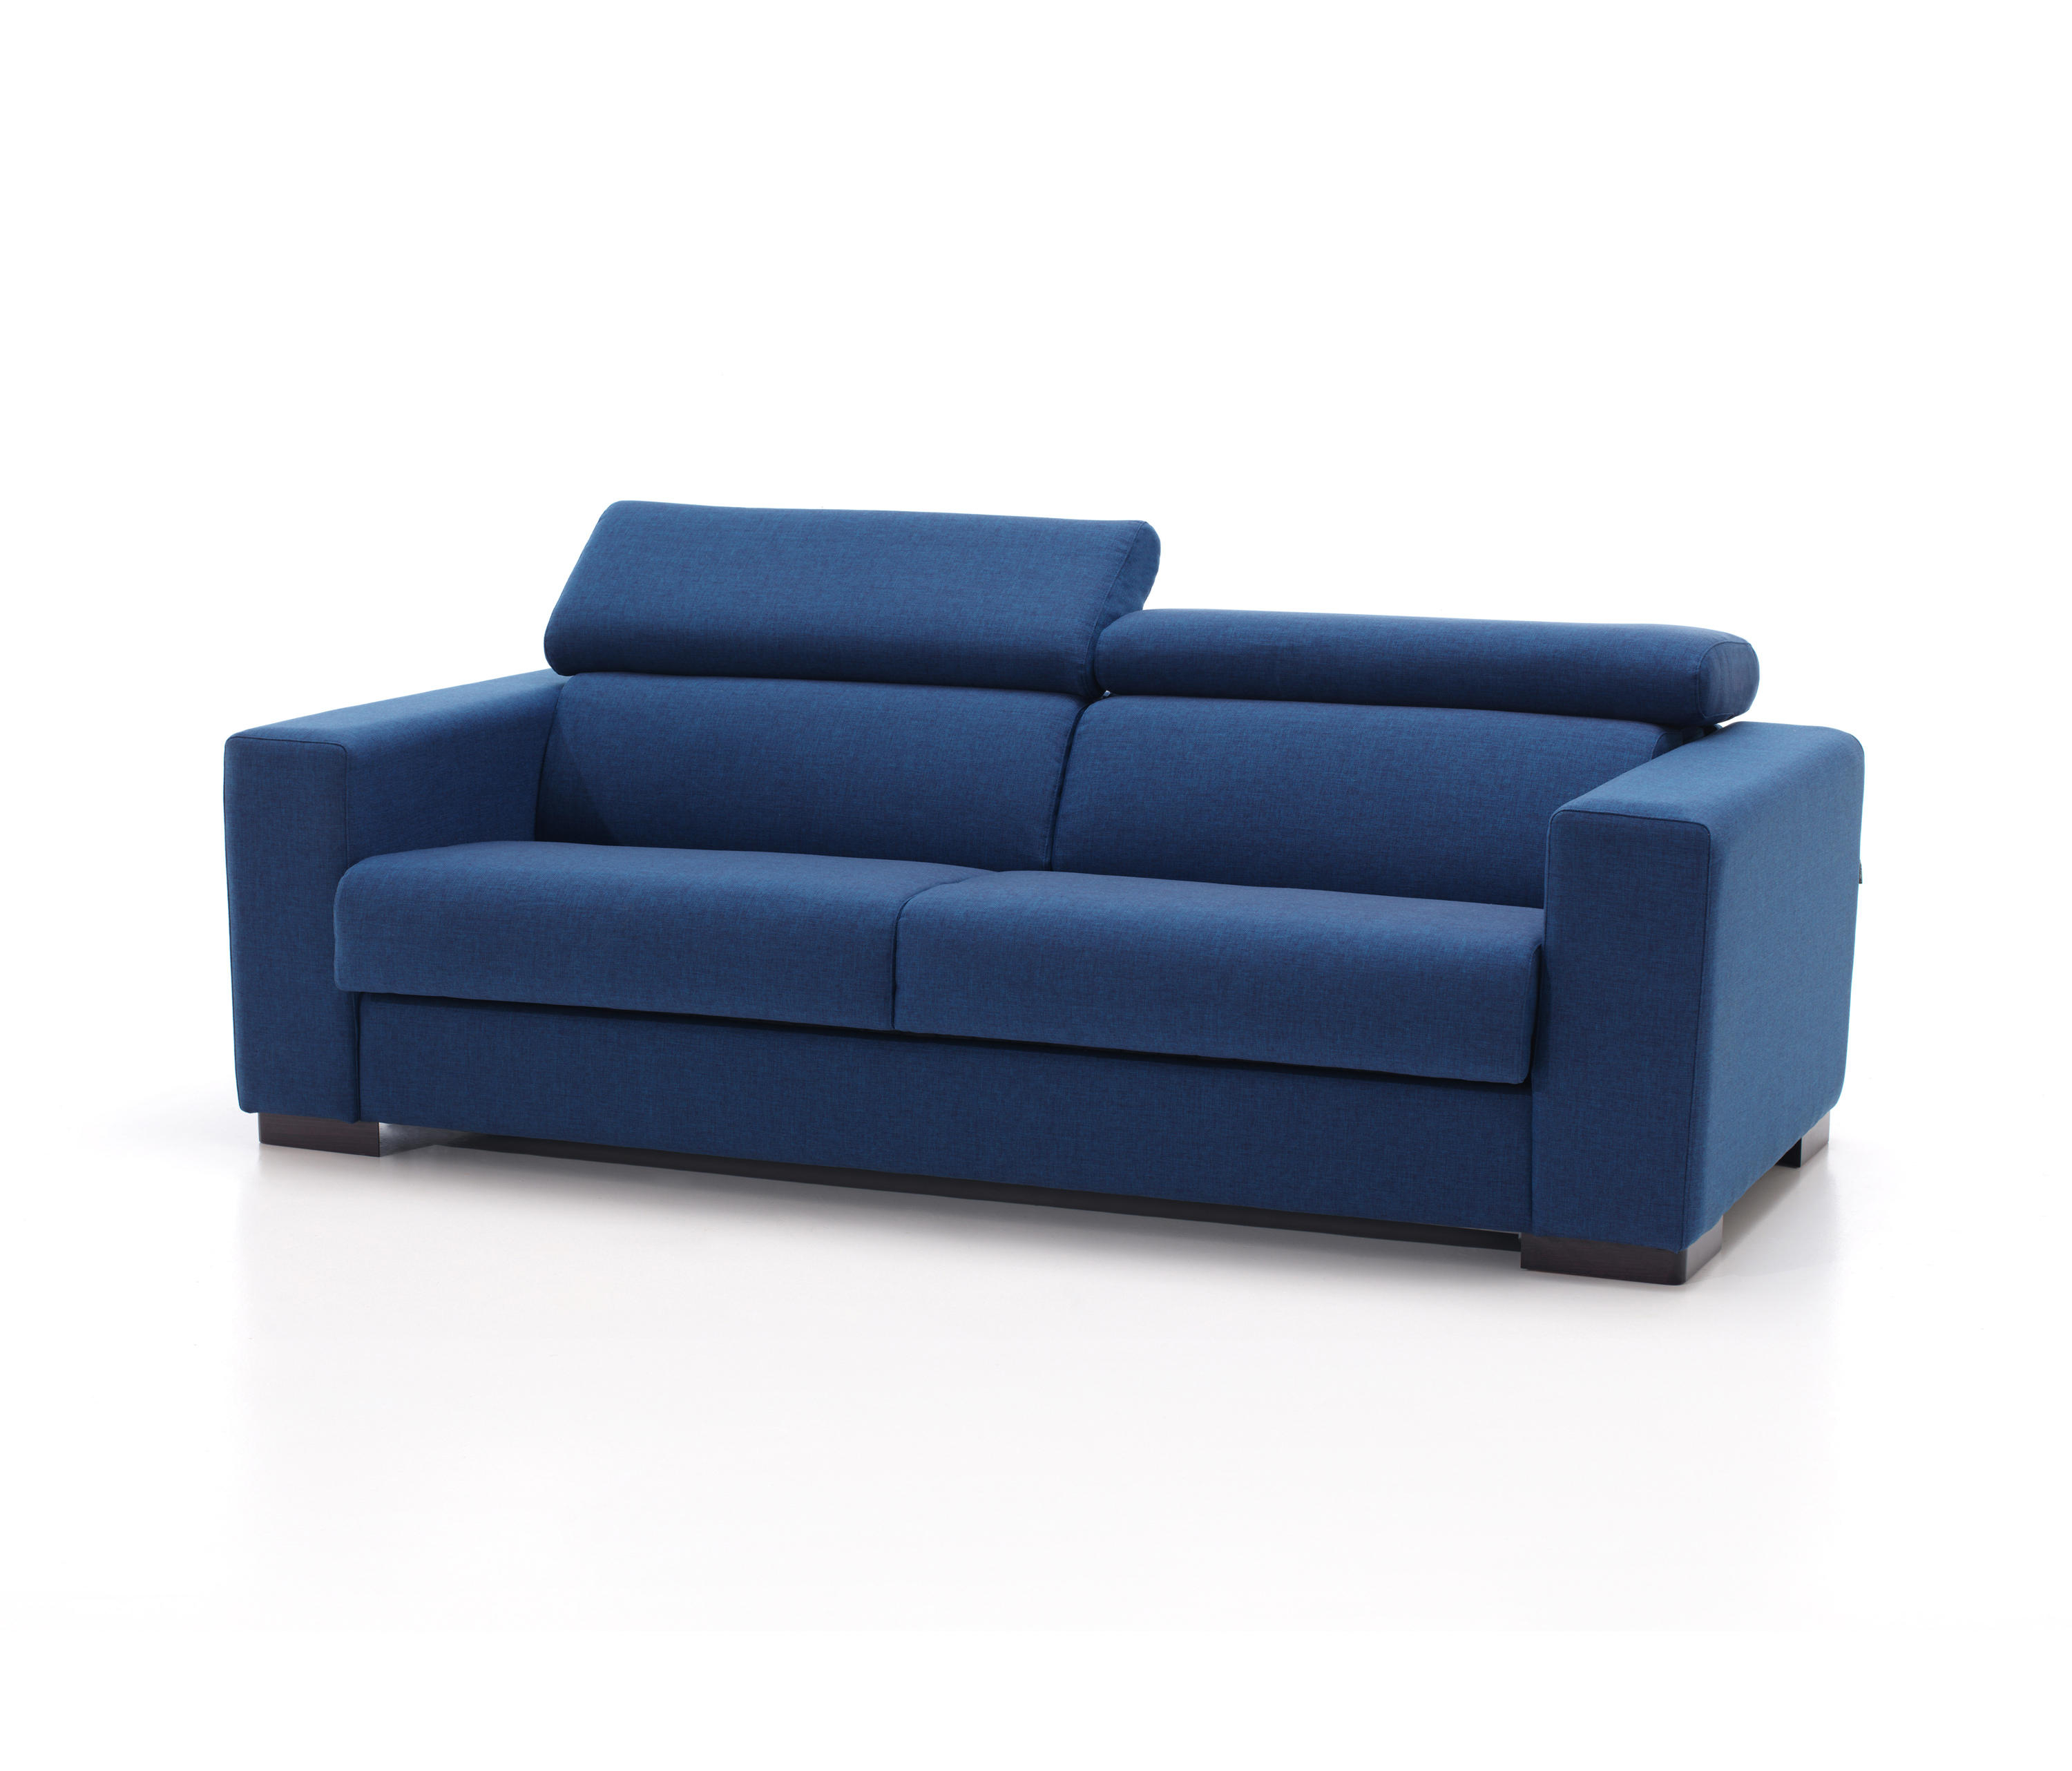 Cona – Sofas From Belta & Frajumar | Architonic Within Gina Blue Leather Sofa Chairs (Image 6 of 25)